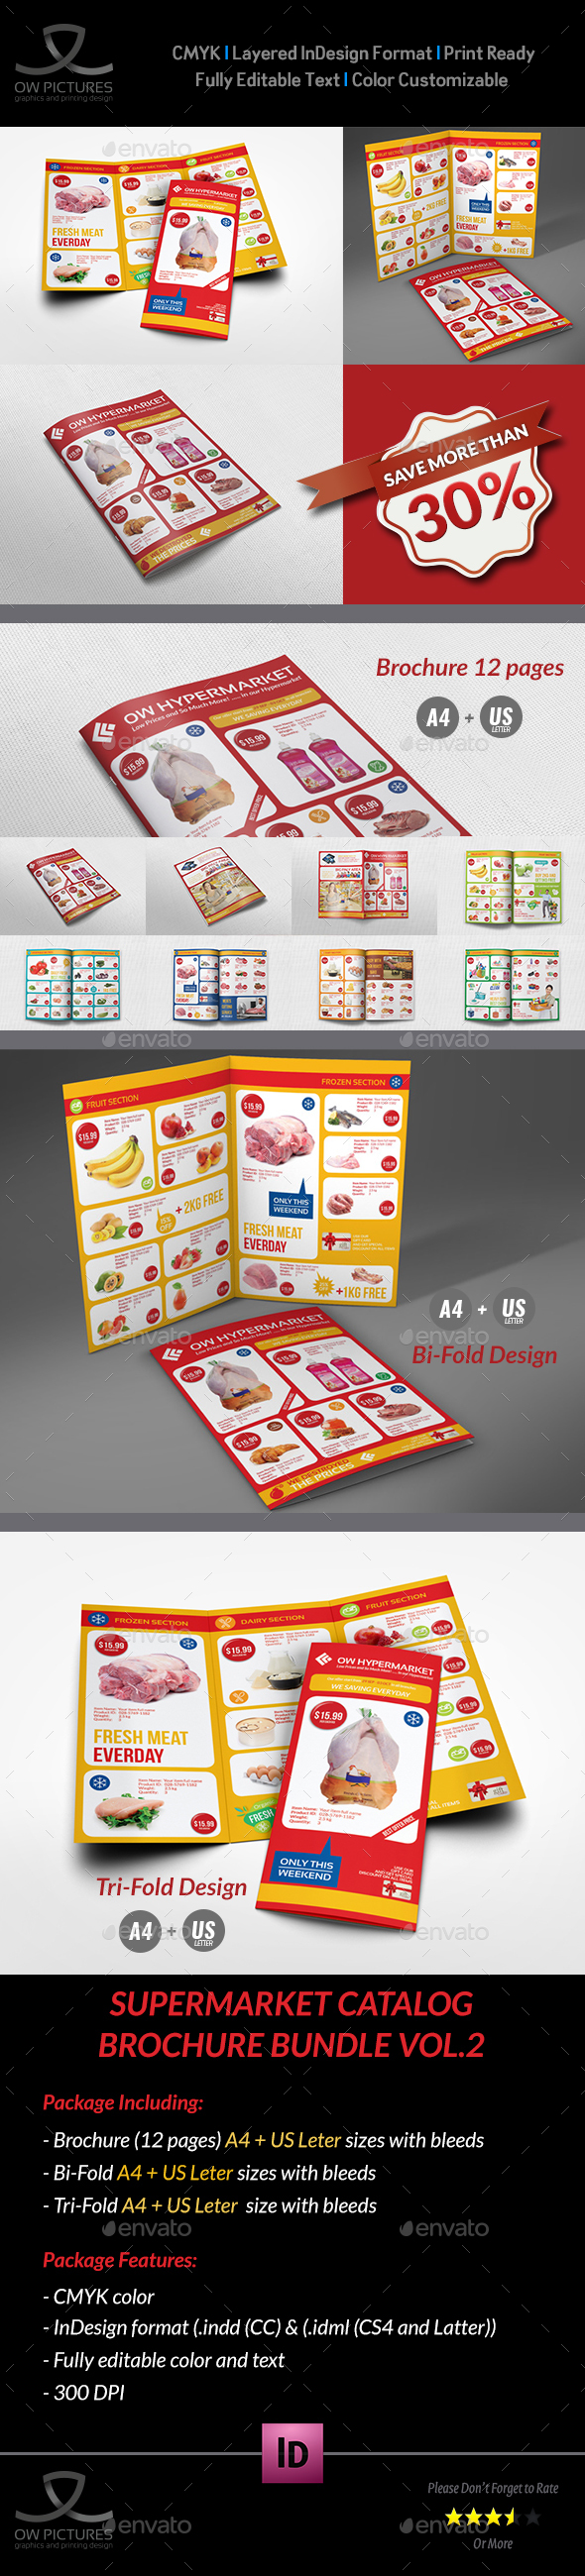 Supermarket Catalog Brochure Bundle Template Vol.2 - Catalogs Brochures